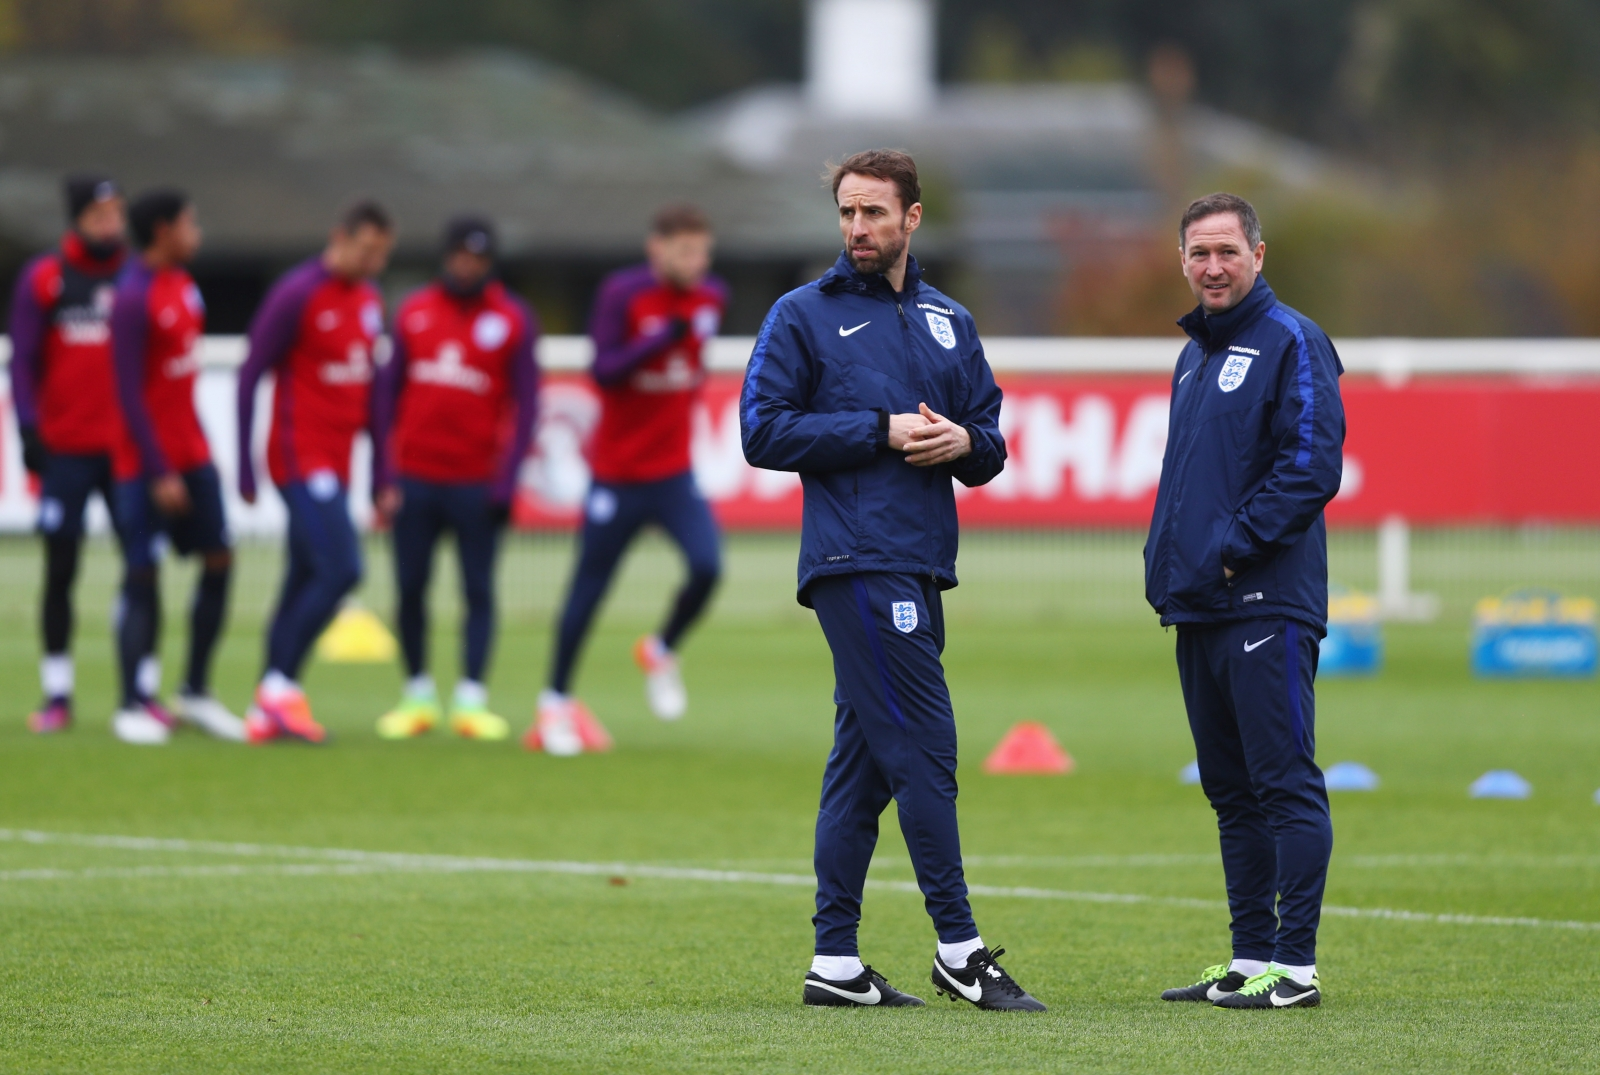 Chelsea's Antonio Conte disappointed to lose Steve Holland to England